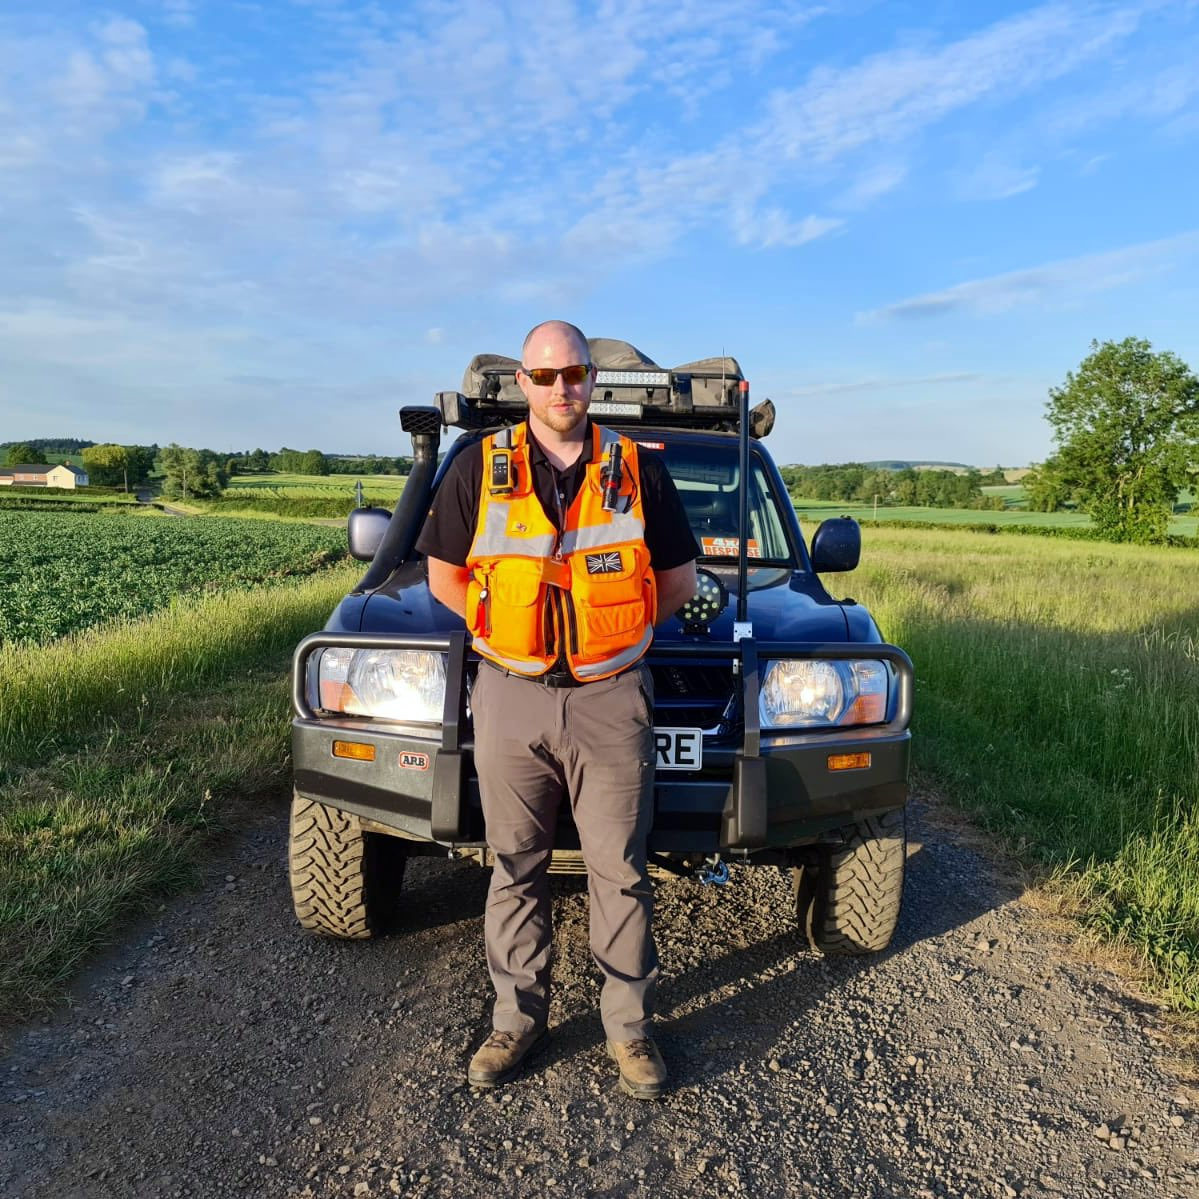 It's #VolunteersWeek, and we want to say thank you to our amazing team. Andrew is a recruitment manager and overland adventurer, but has been using his Shogun to deliver food packs and prescriptions, as well as stopping by to check on the welfare of those who are vulnerable.